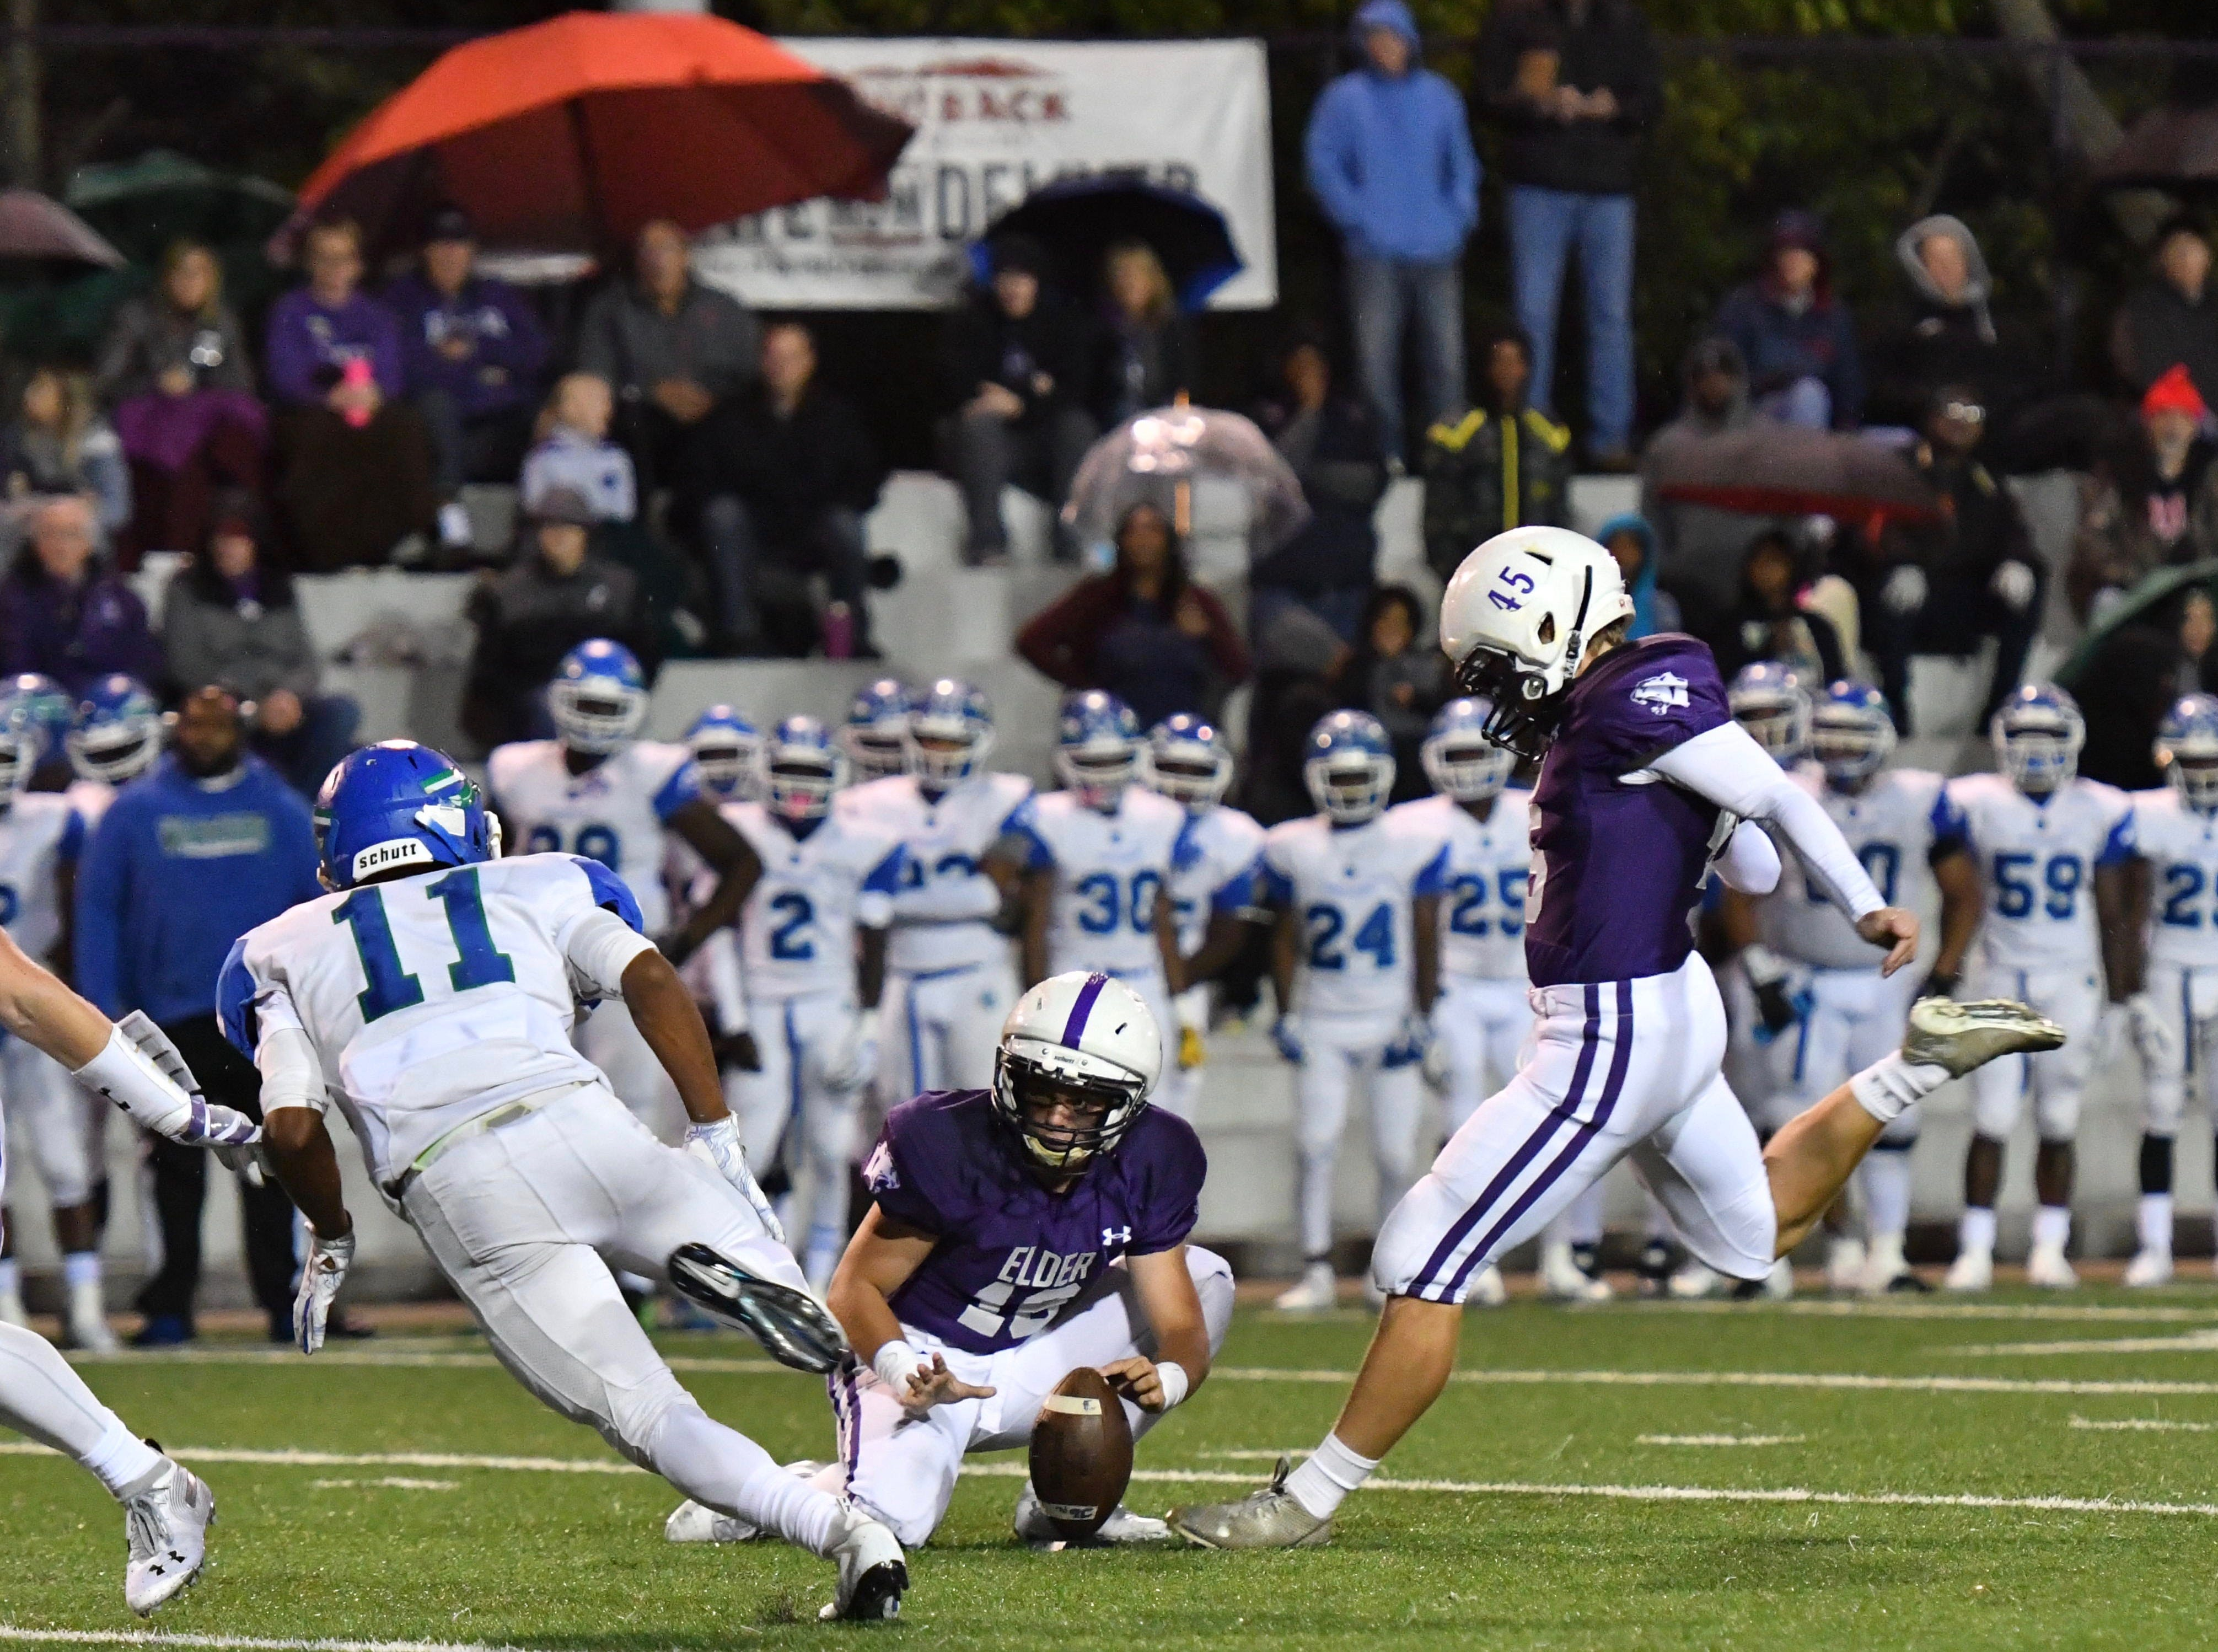 Elder kicker Sam Harmeyer drills a 28-yard field goal in the first half against Winton Woods Friday, Oct. 12, 2018.